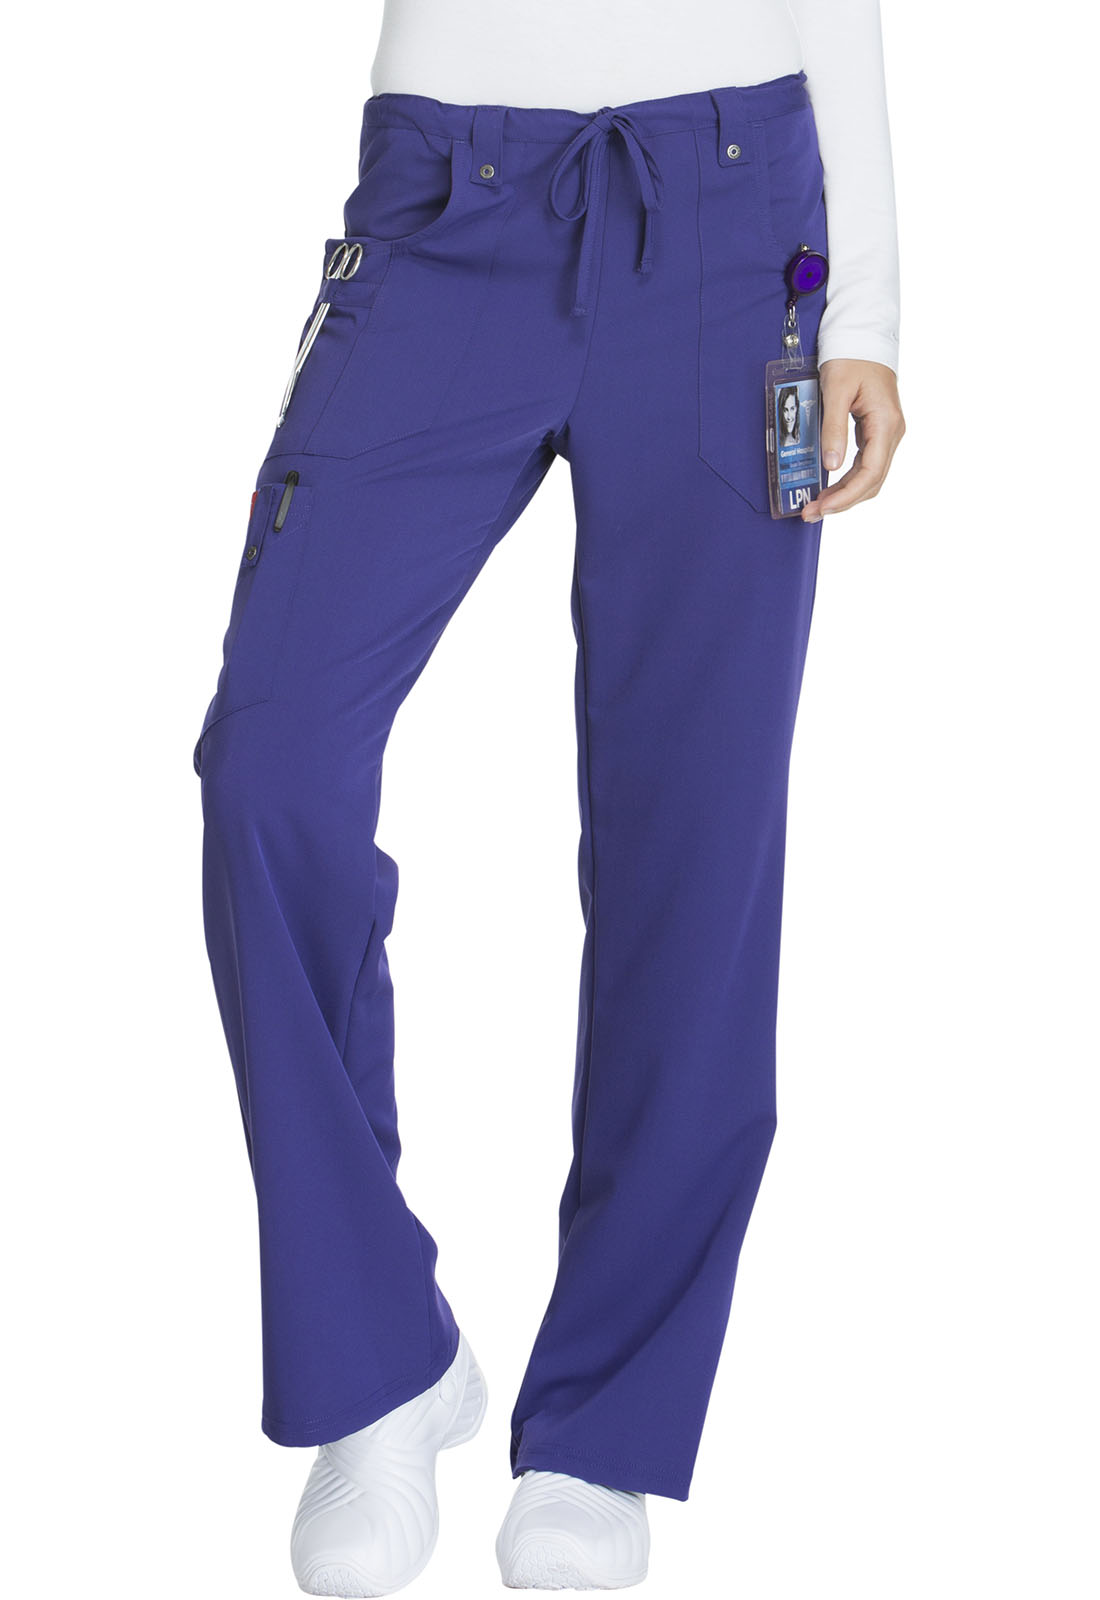 4dcf0c768a6 Xtreme Stretch Mid Rise Drawstring Cargo Pant in Grape 82011-GPWZ ...